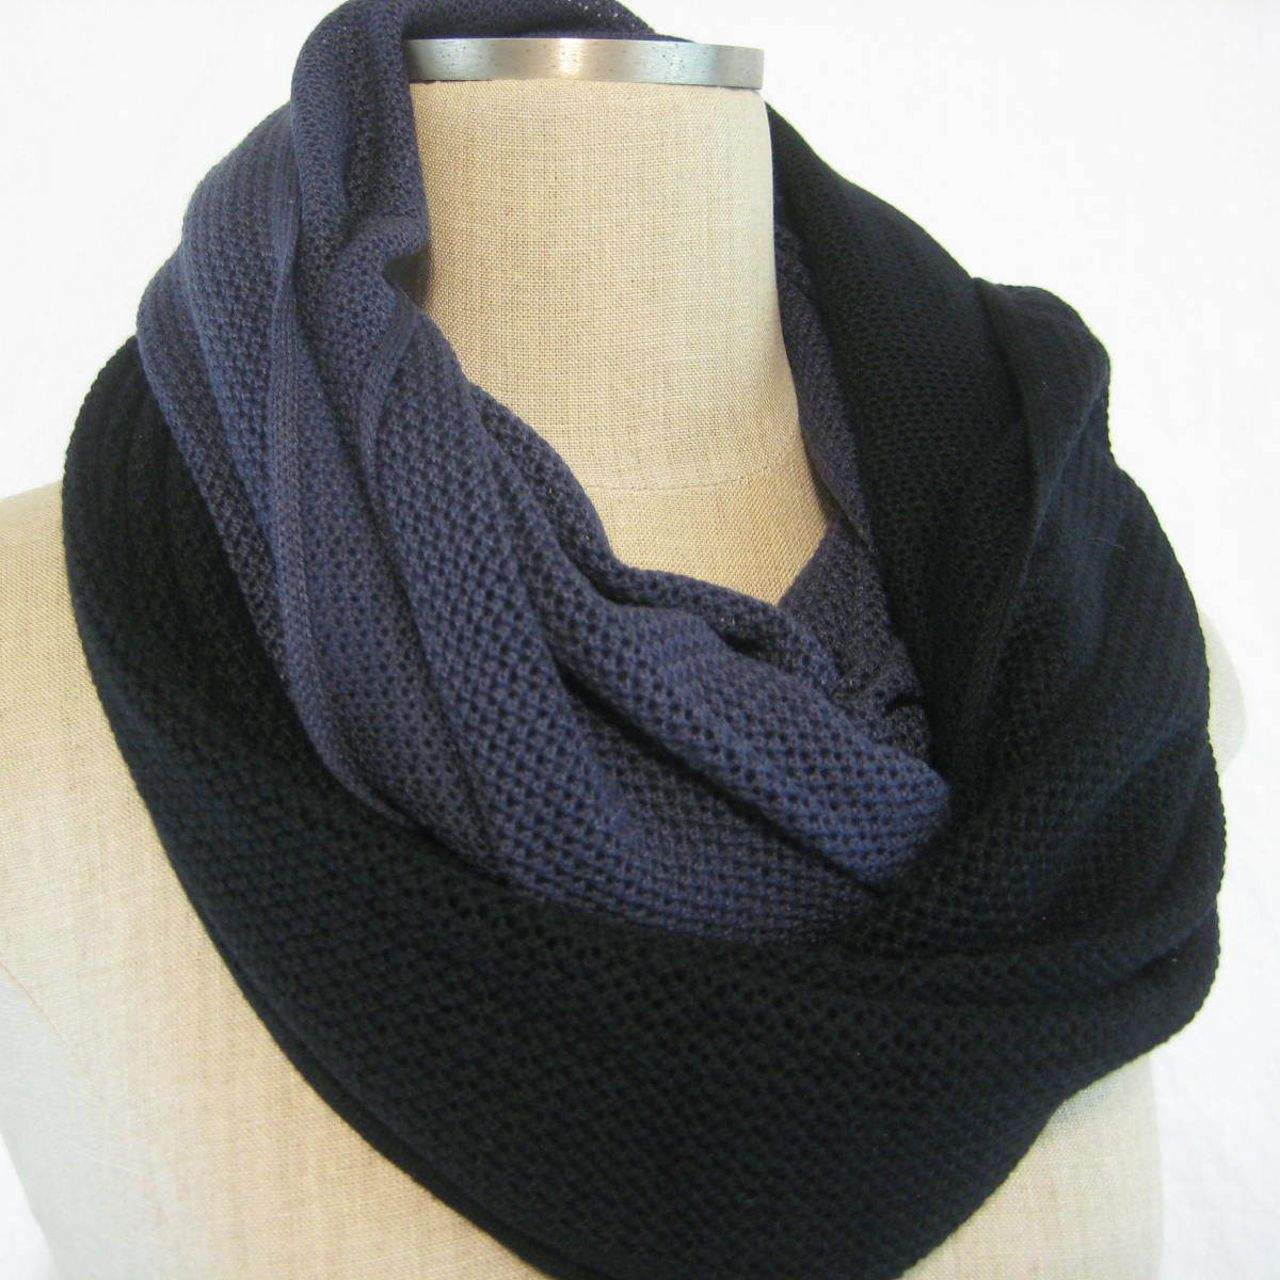 Lululemon Om Onward Scarf - Cadet Blue / Black - lulu fanatics